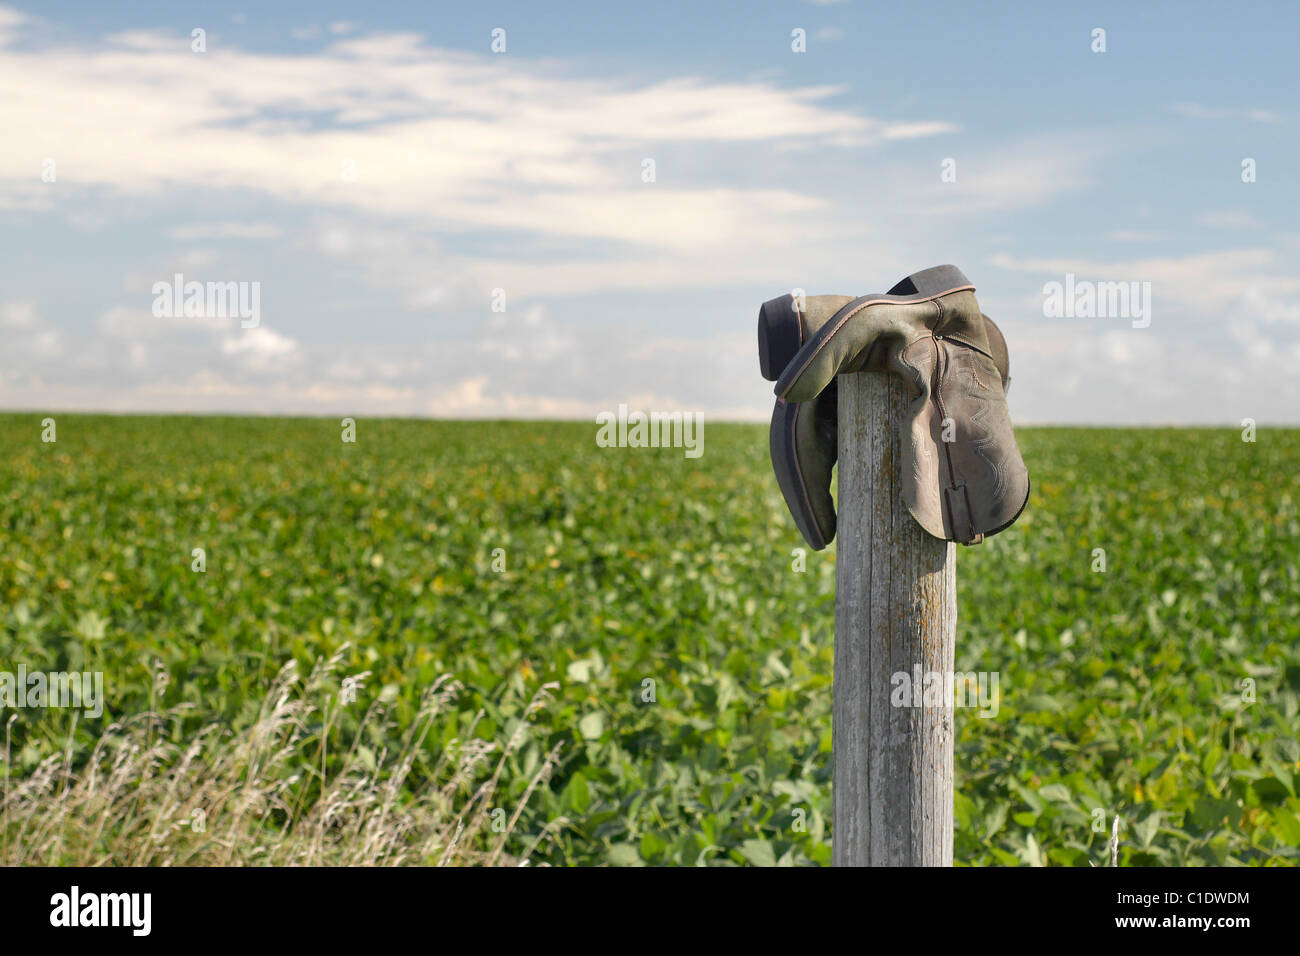 Boots on a fencepost in rural Iowa - Stock Image